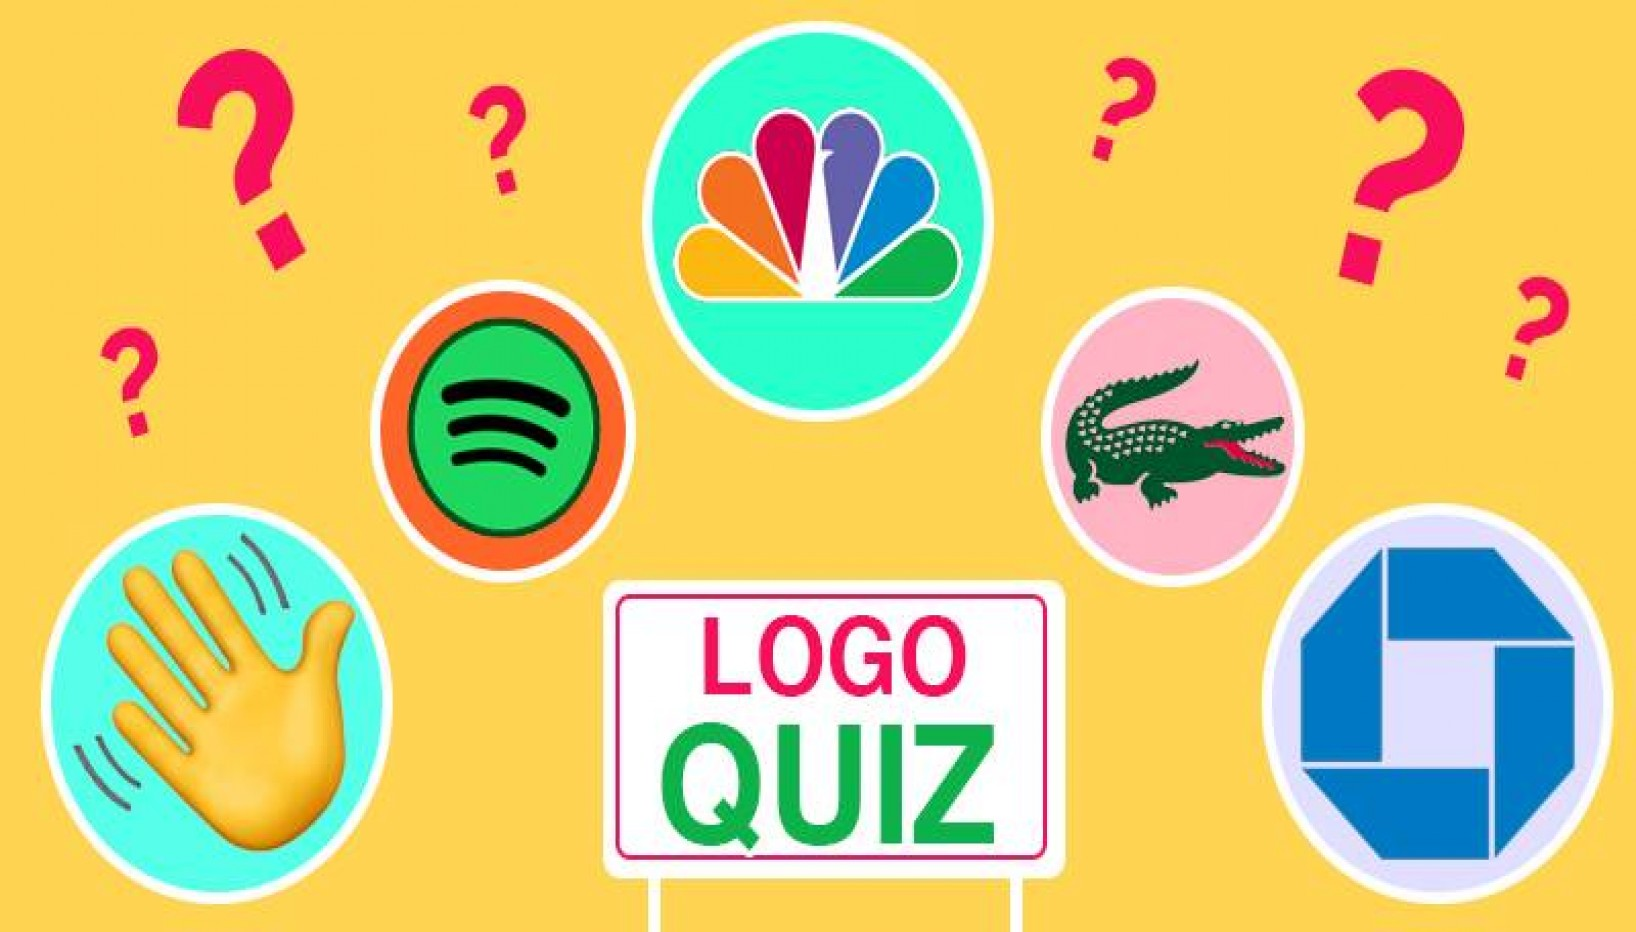 Can You Recognize All 10 Of These Iconic Logos?